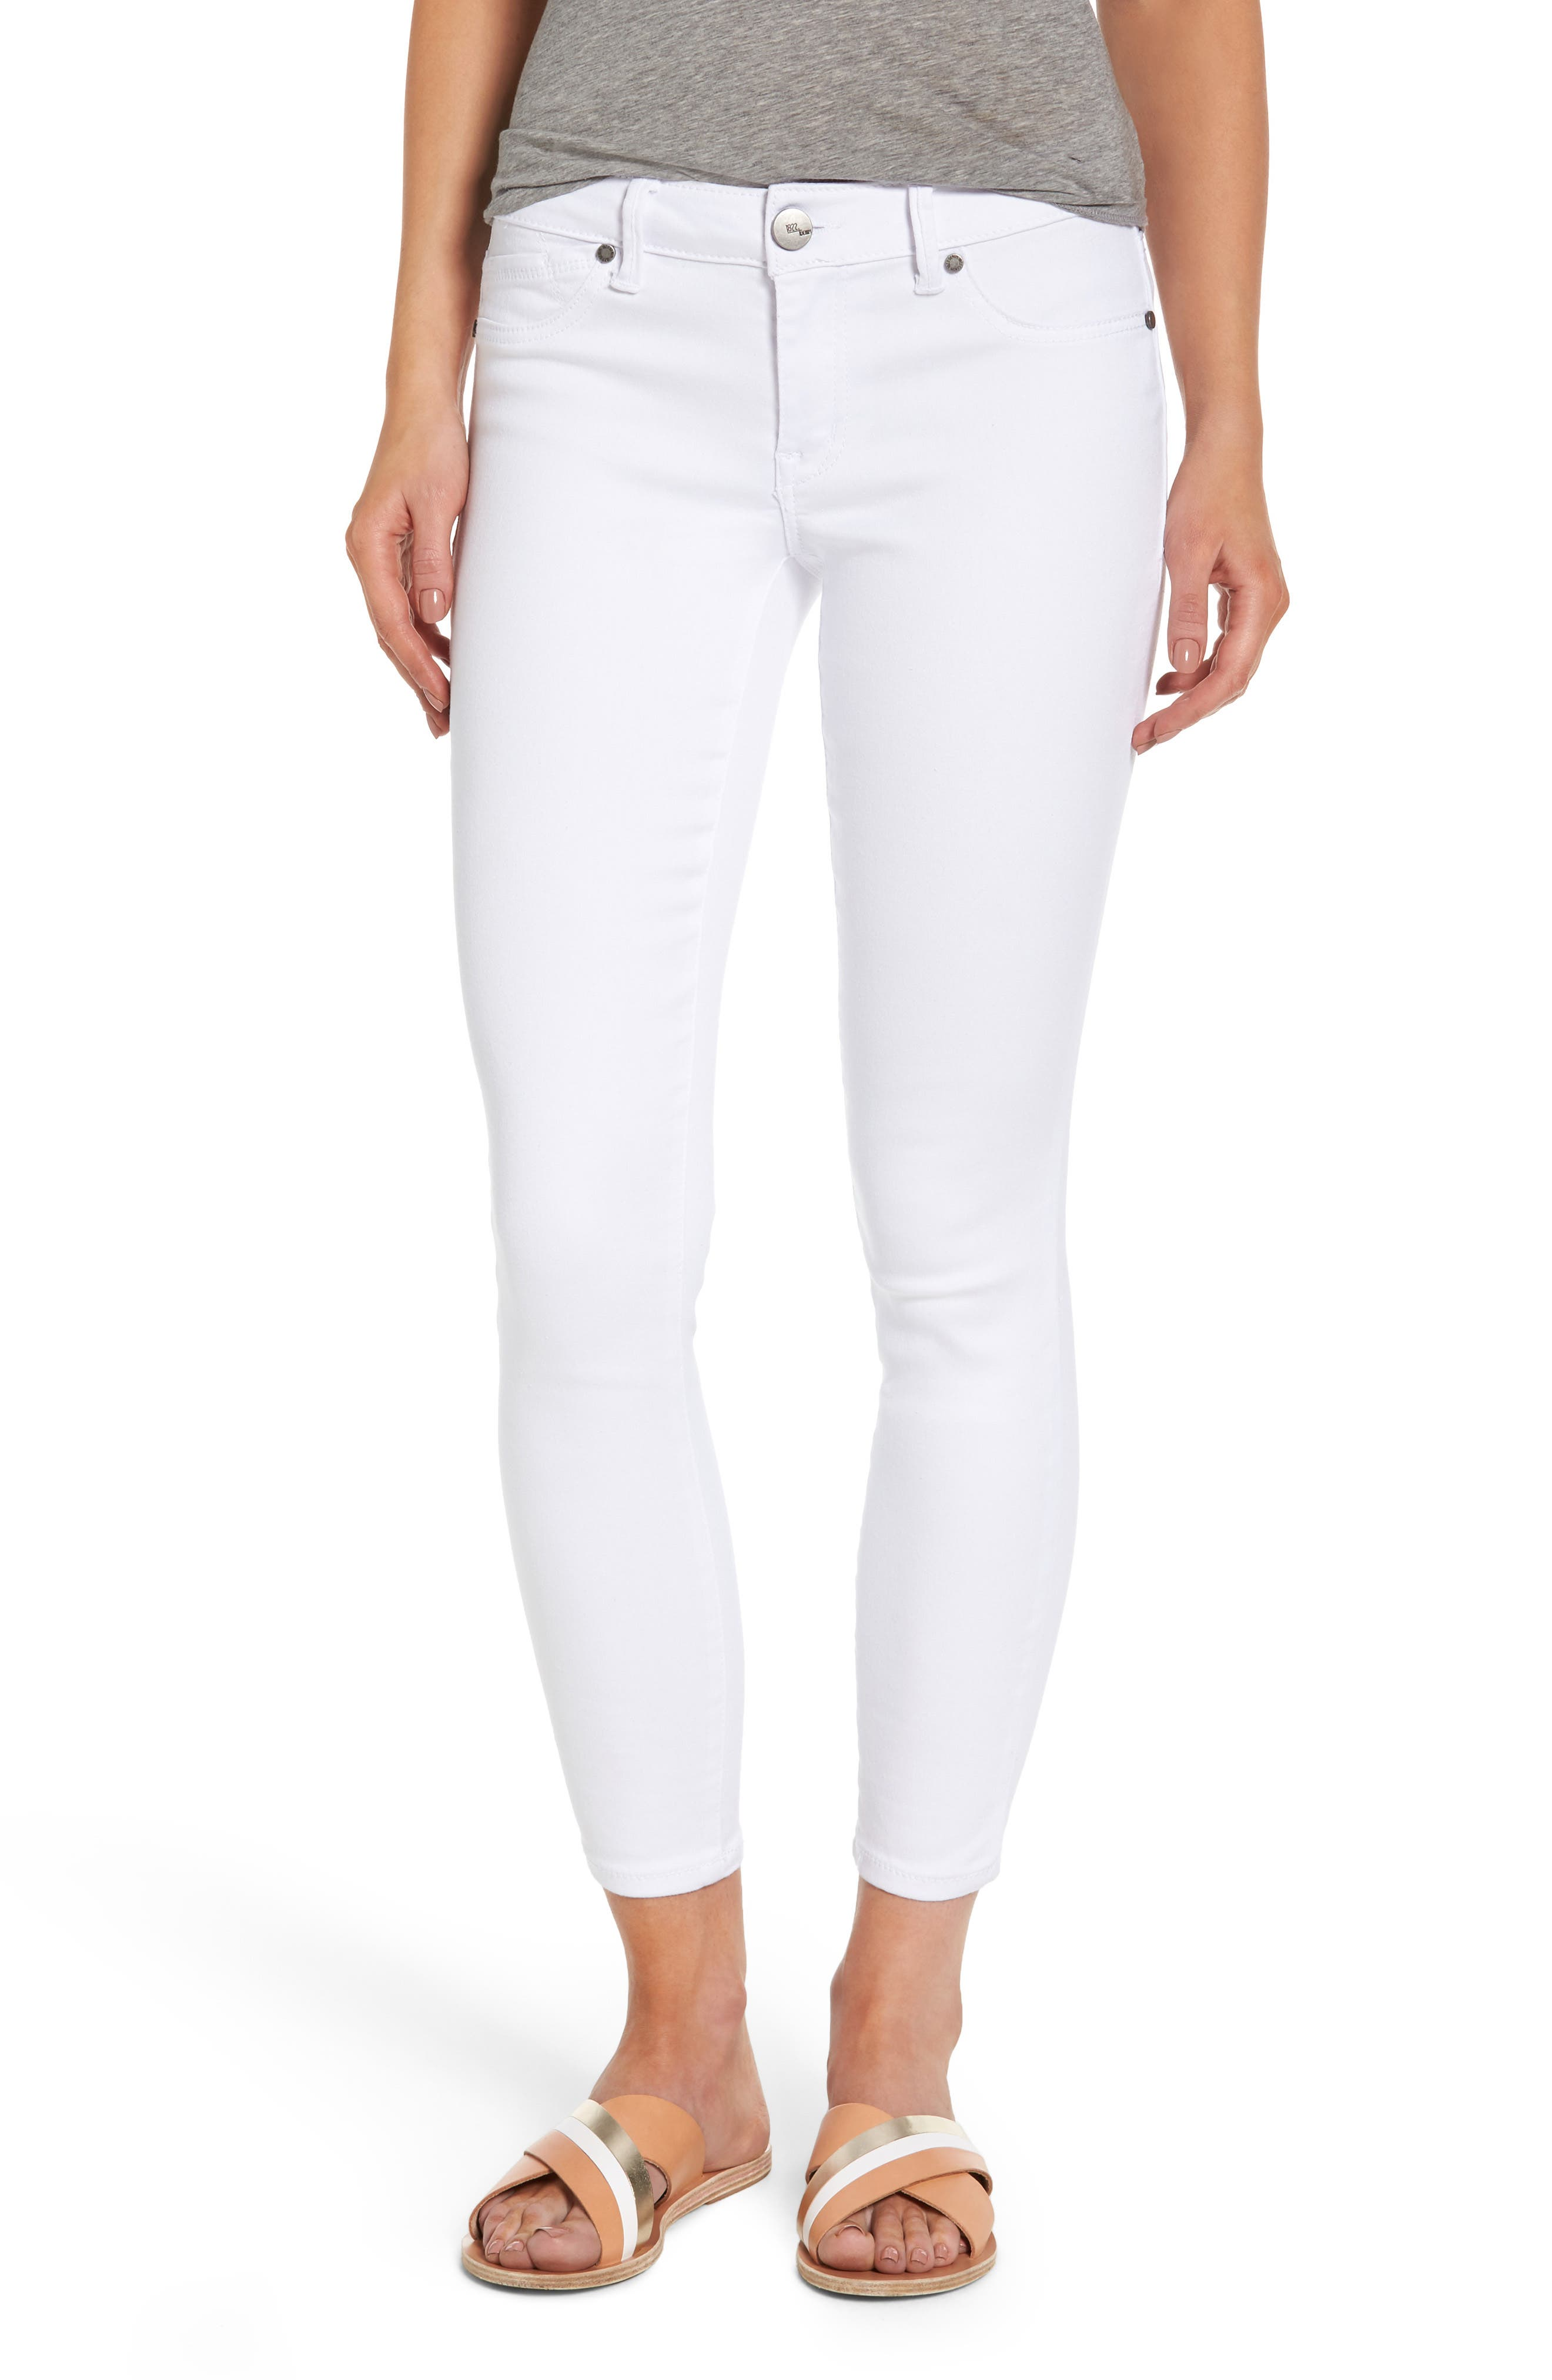 1822 Butter Skinny Jeans